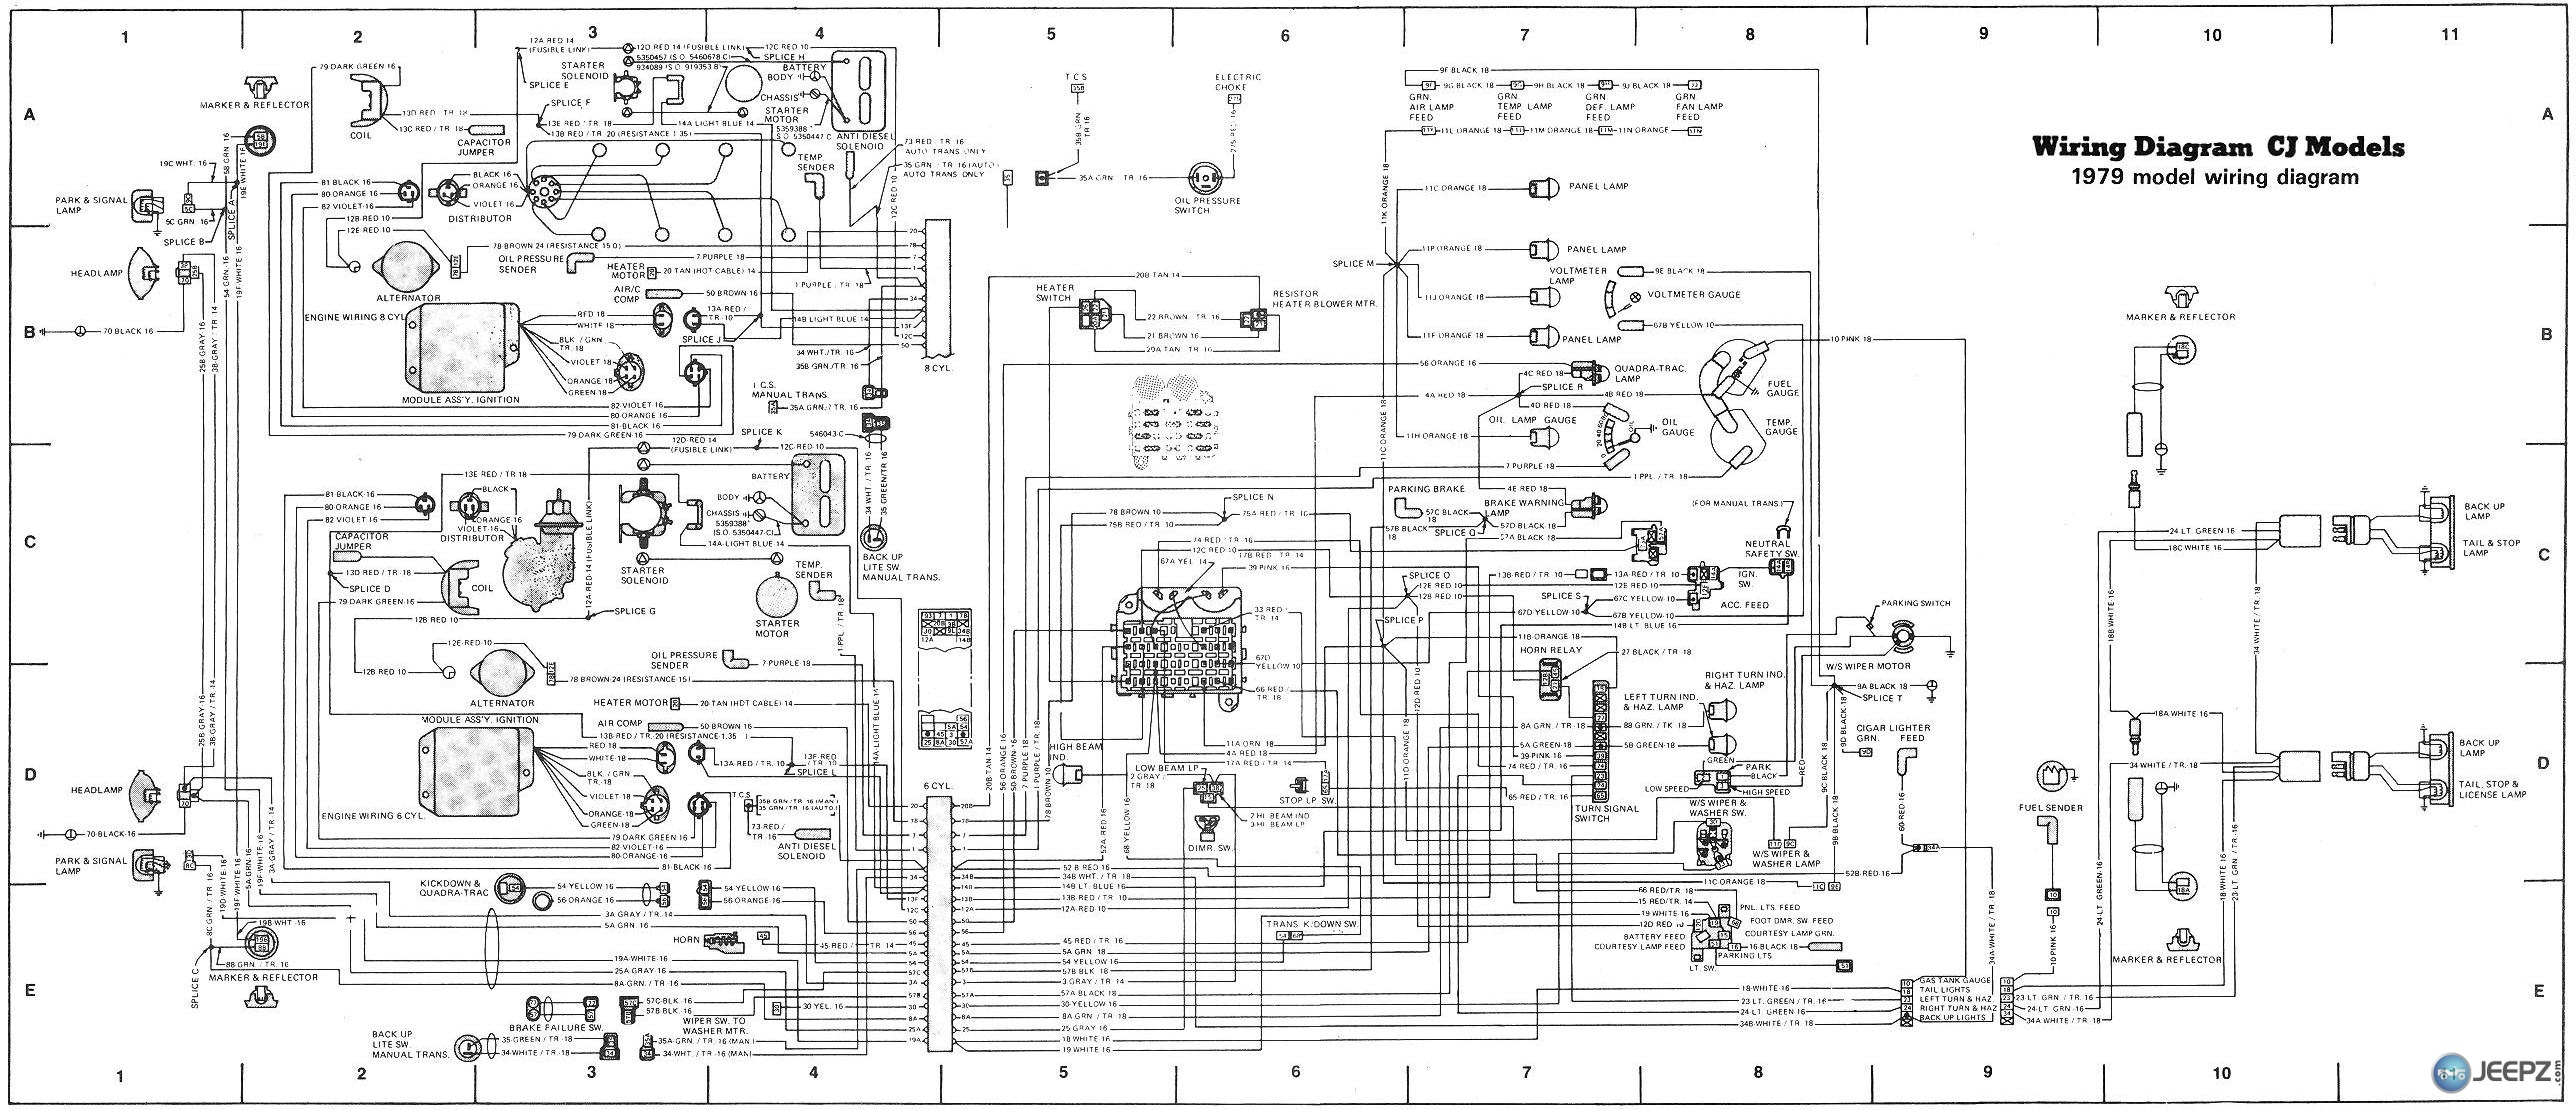 wiring diagram for sony xplod 50wx4 the wiring diagram sony xplod wire diagram nilza wiring diagram